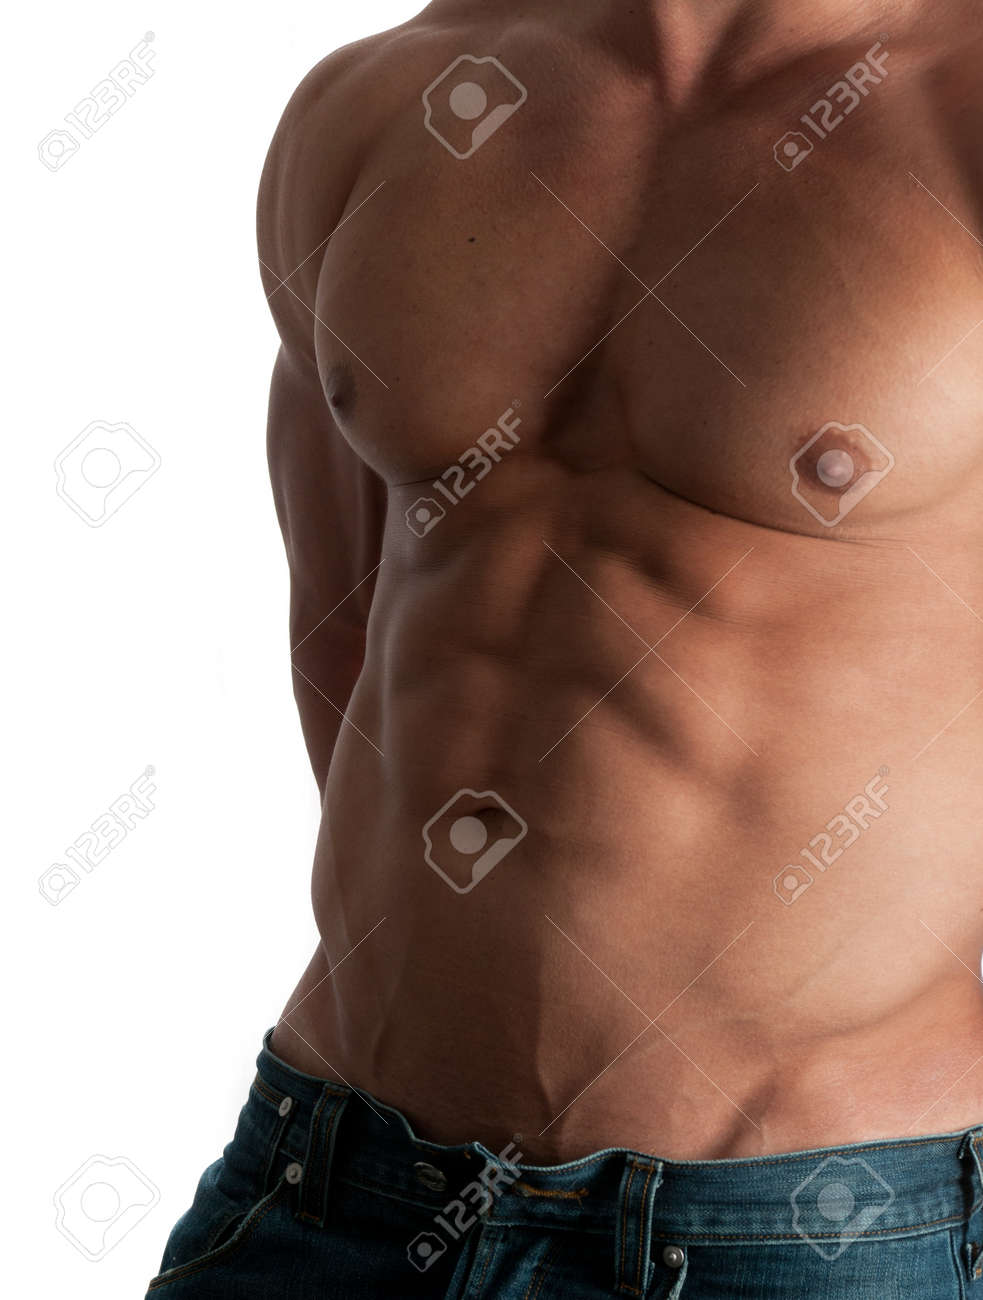 Muscular male torso of bodybuilder at jeans on white background Stock Photo - 14067373